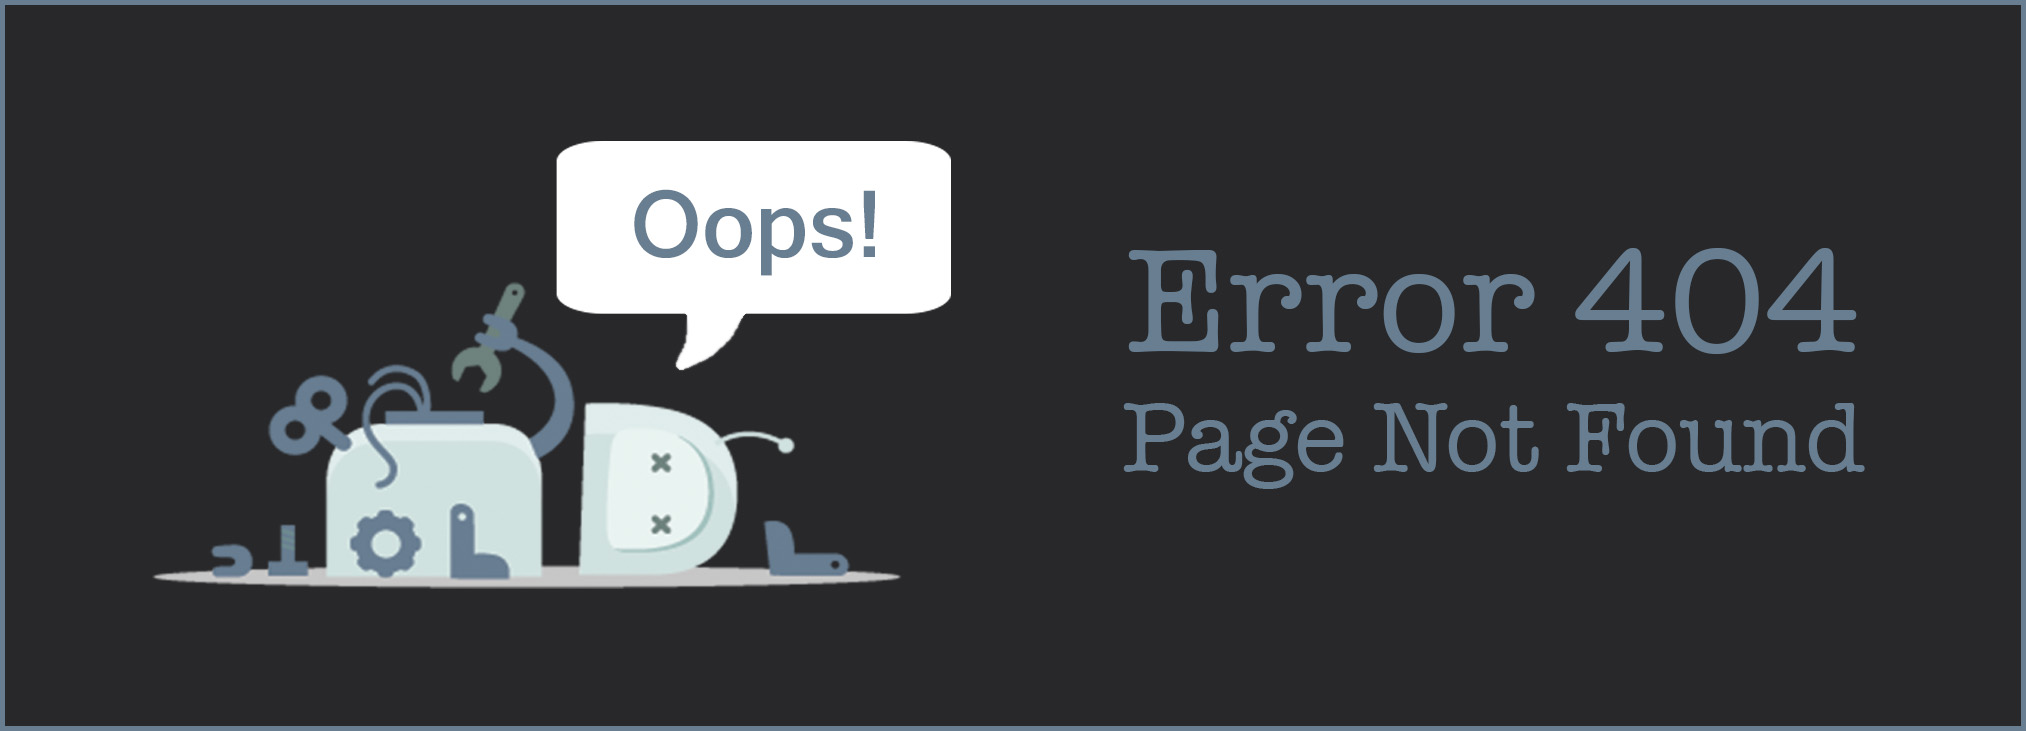 Oops!  Error 404.  Page not found.